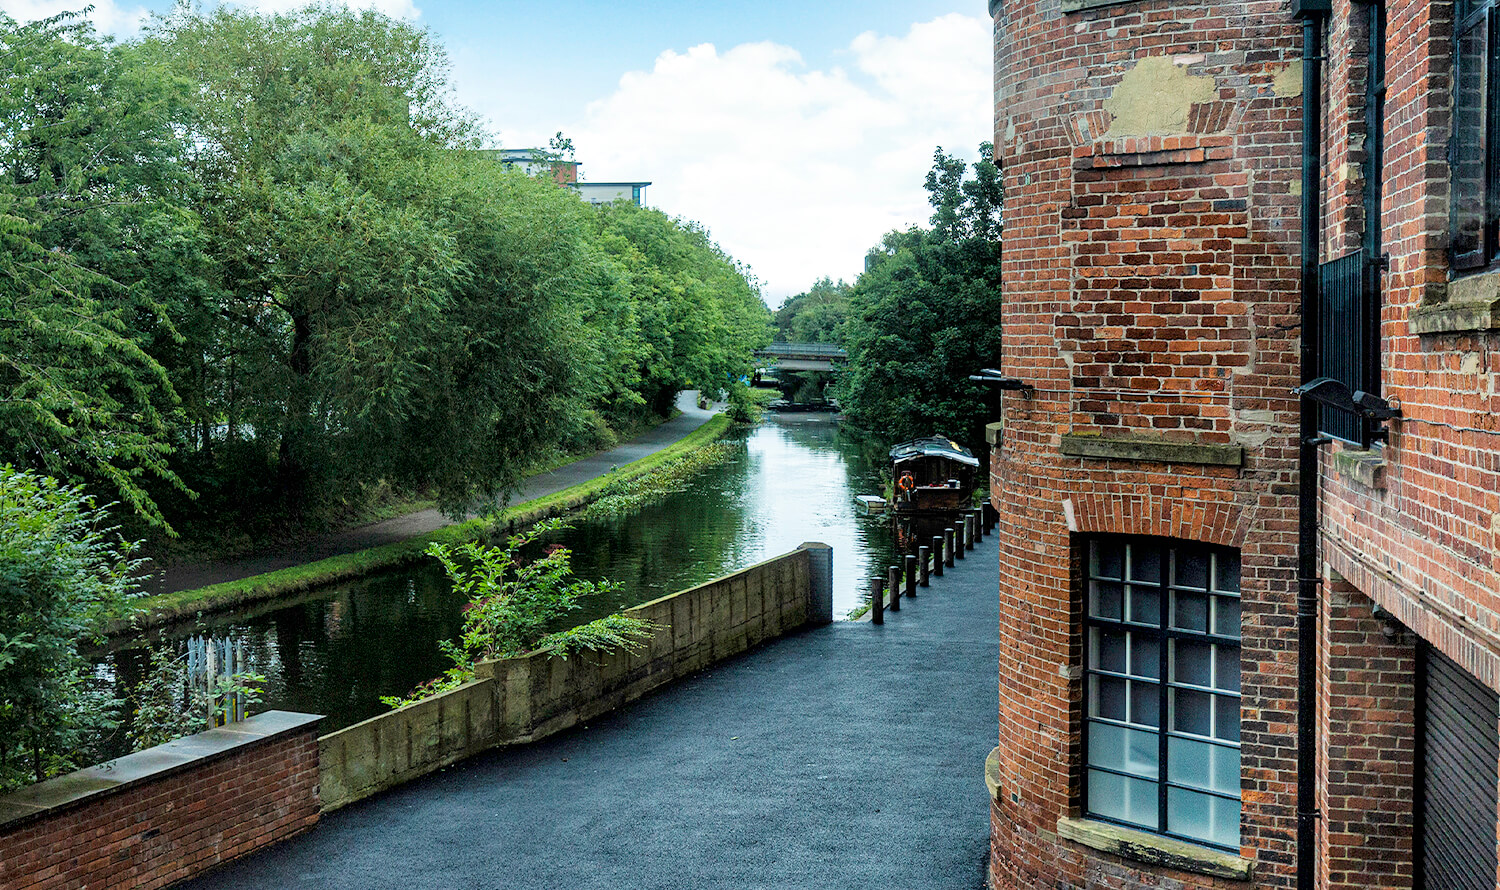 View of the Leeds Liverpool canal from Castleton Mill